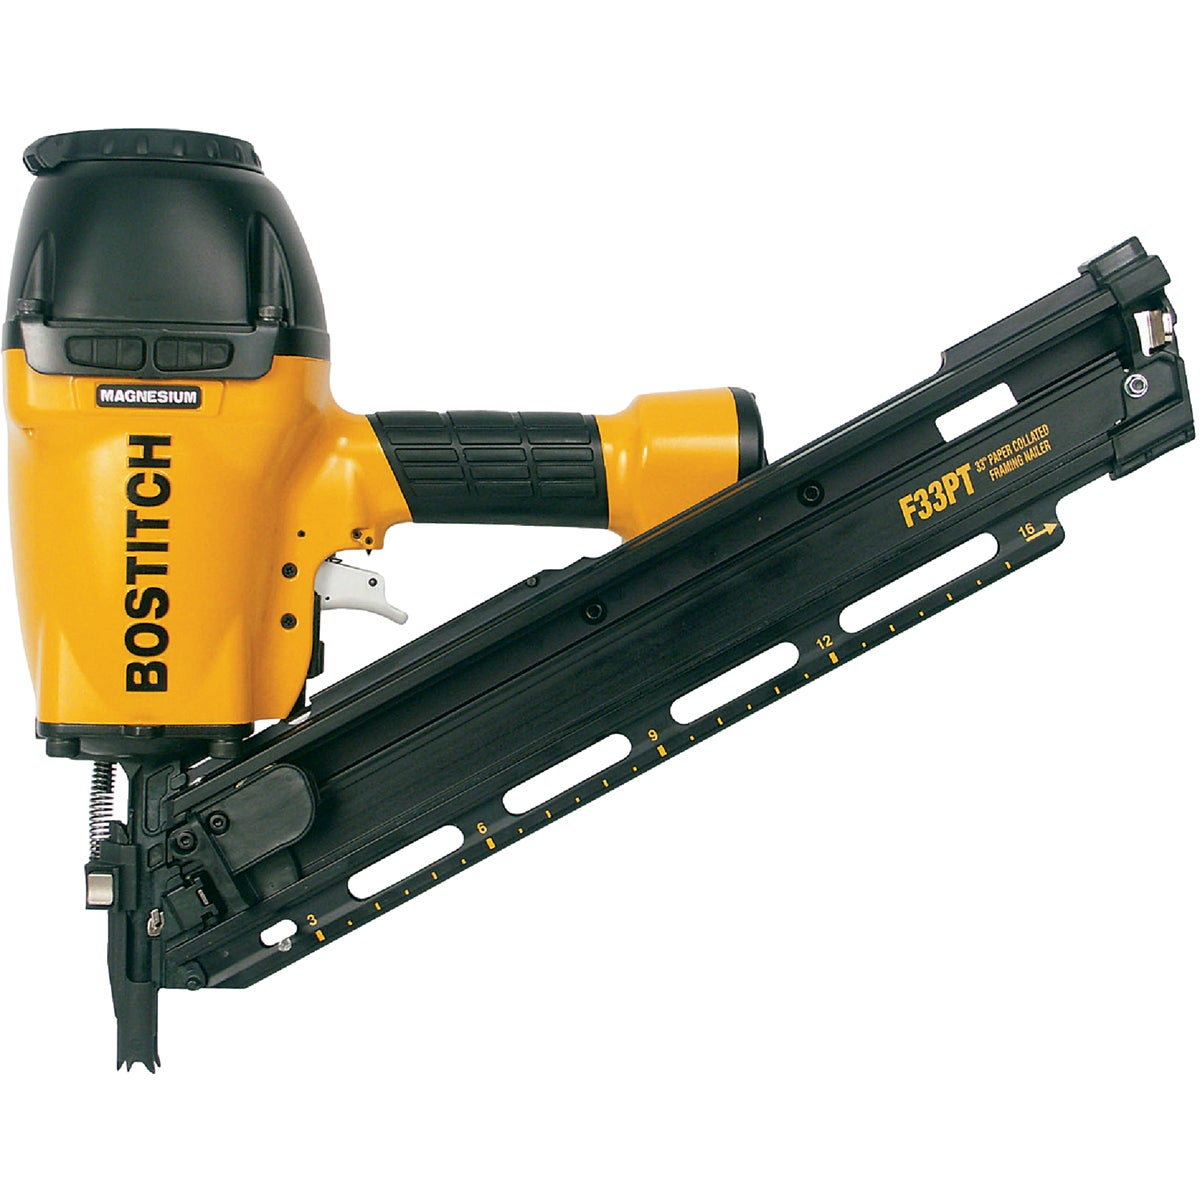 CLPD HEAD FRAMING NAILER - F33PT by Stanley Bostitch